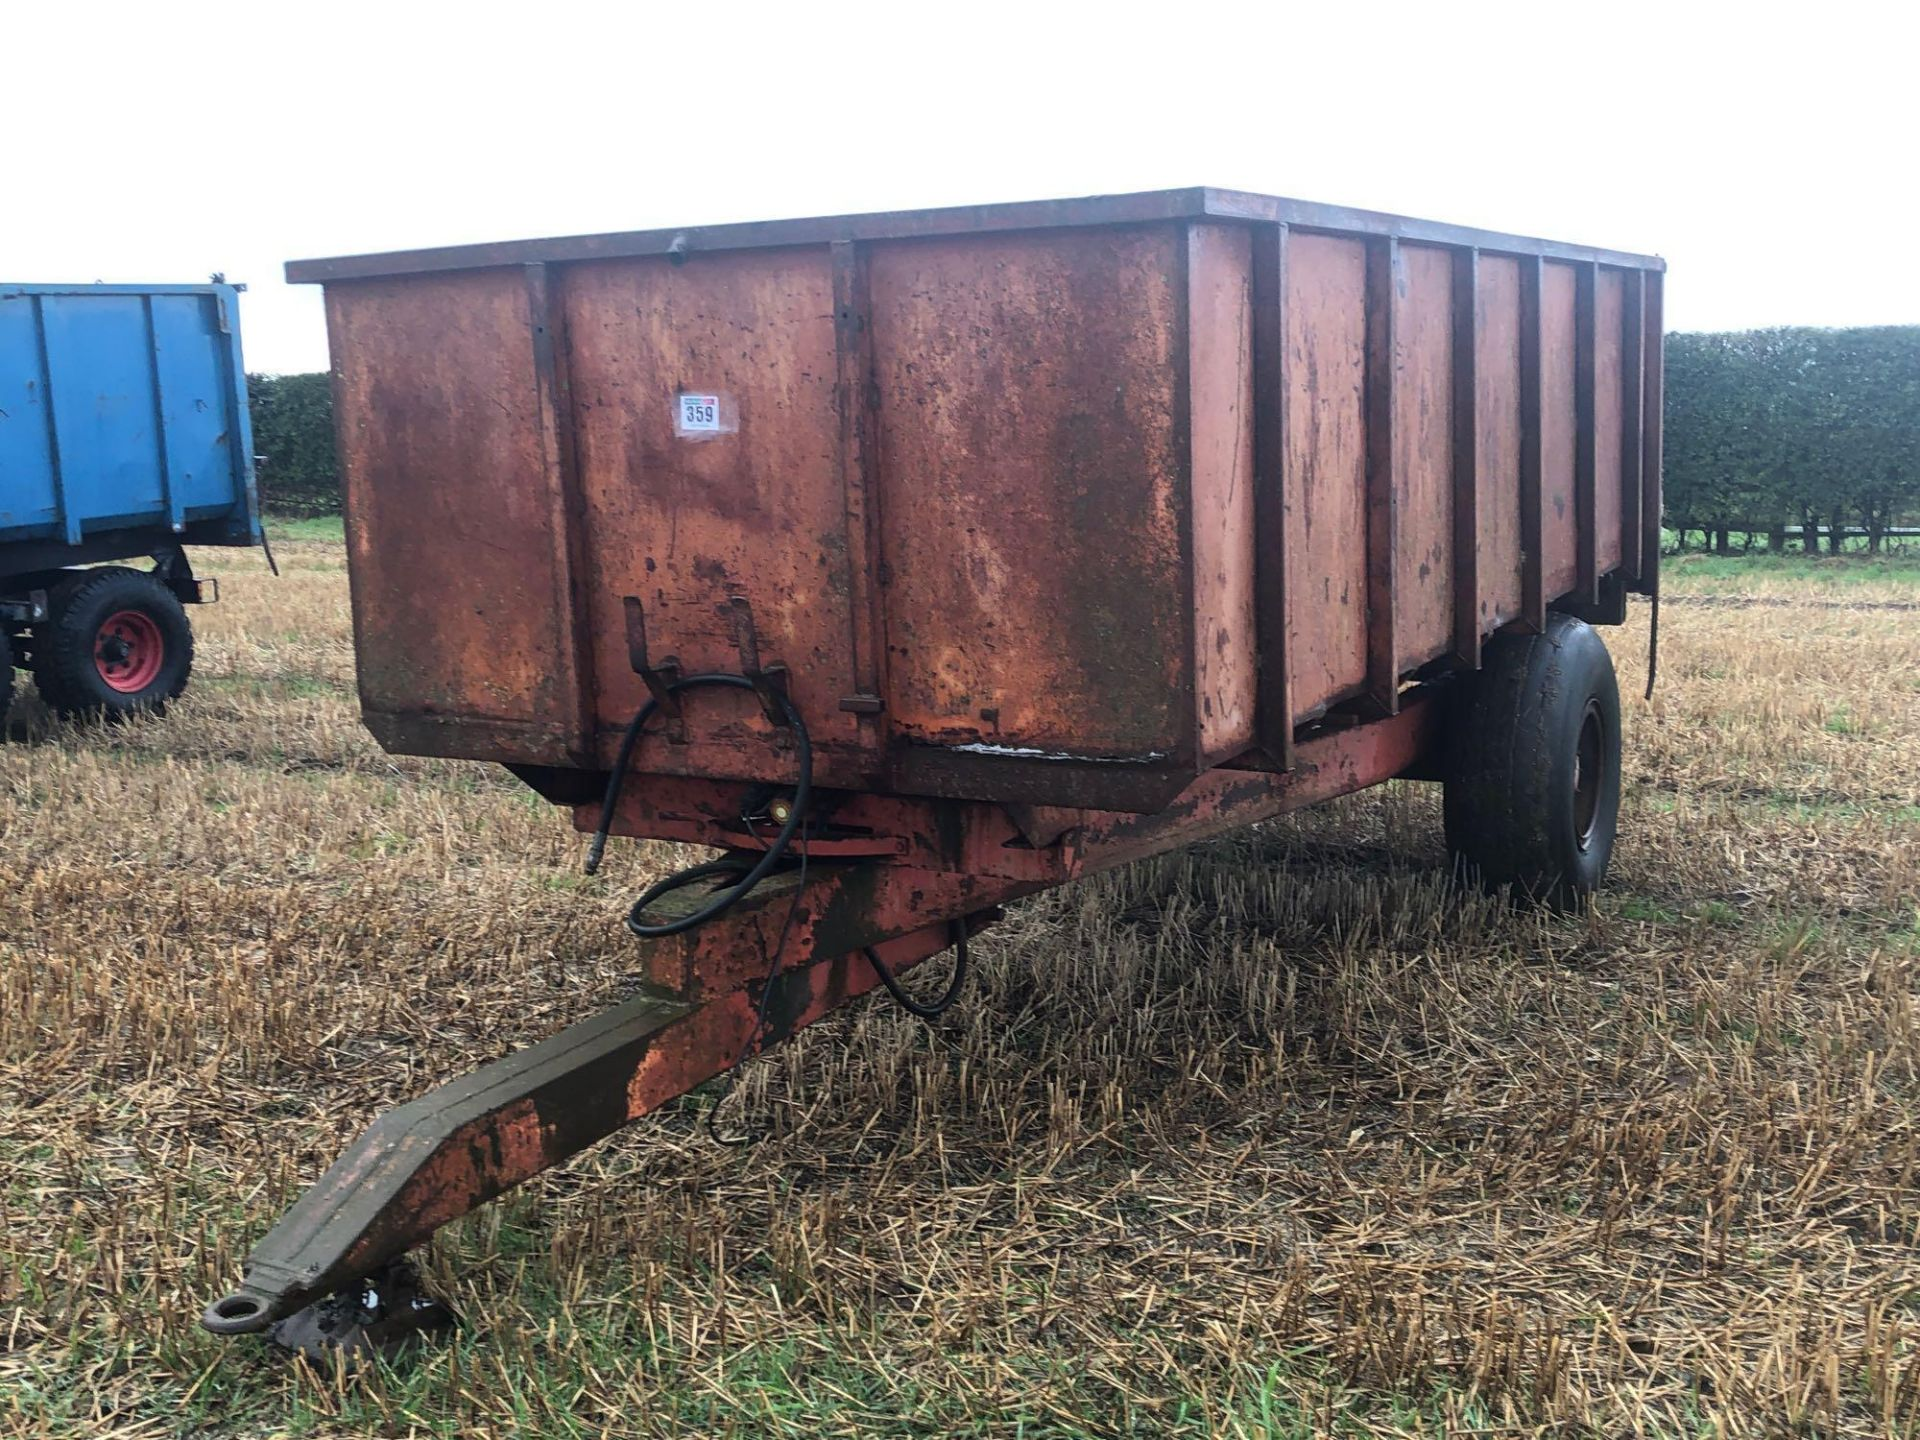 1978 6t homemade single axle trailer. C/w silage sides and back door. - Image 2 of 8